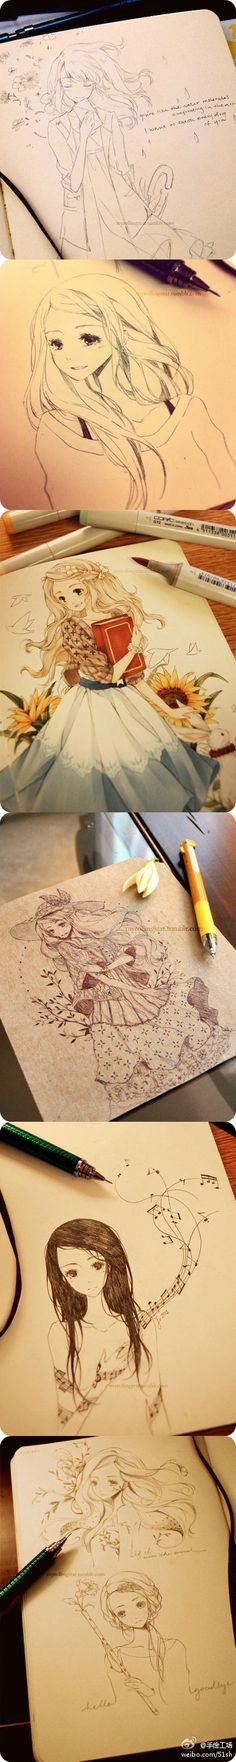 ✮ ANIME ART ✮ anime girls. . .drawing. . .doodle. . .work in progress. . .pen…